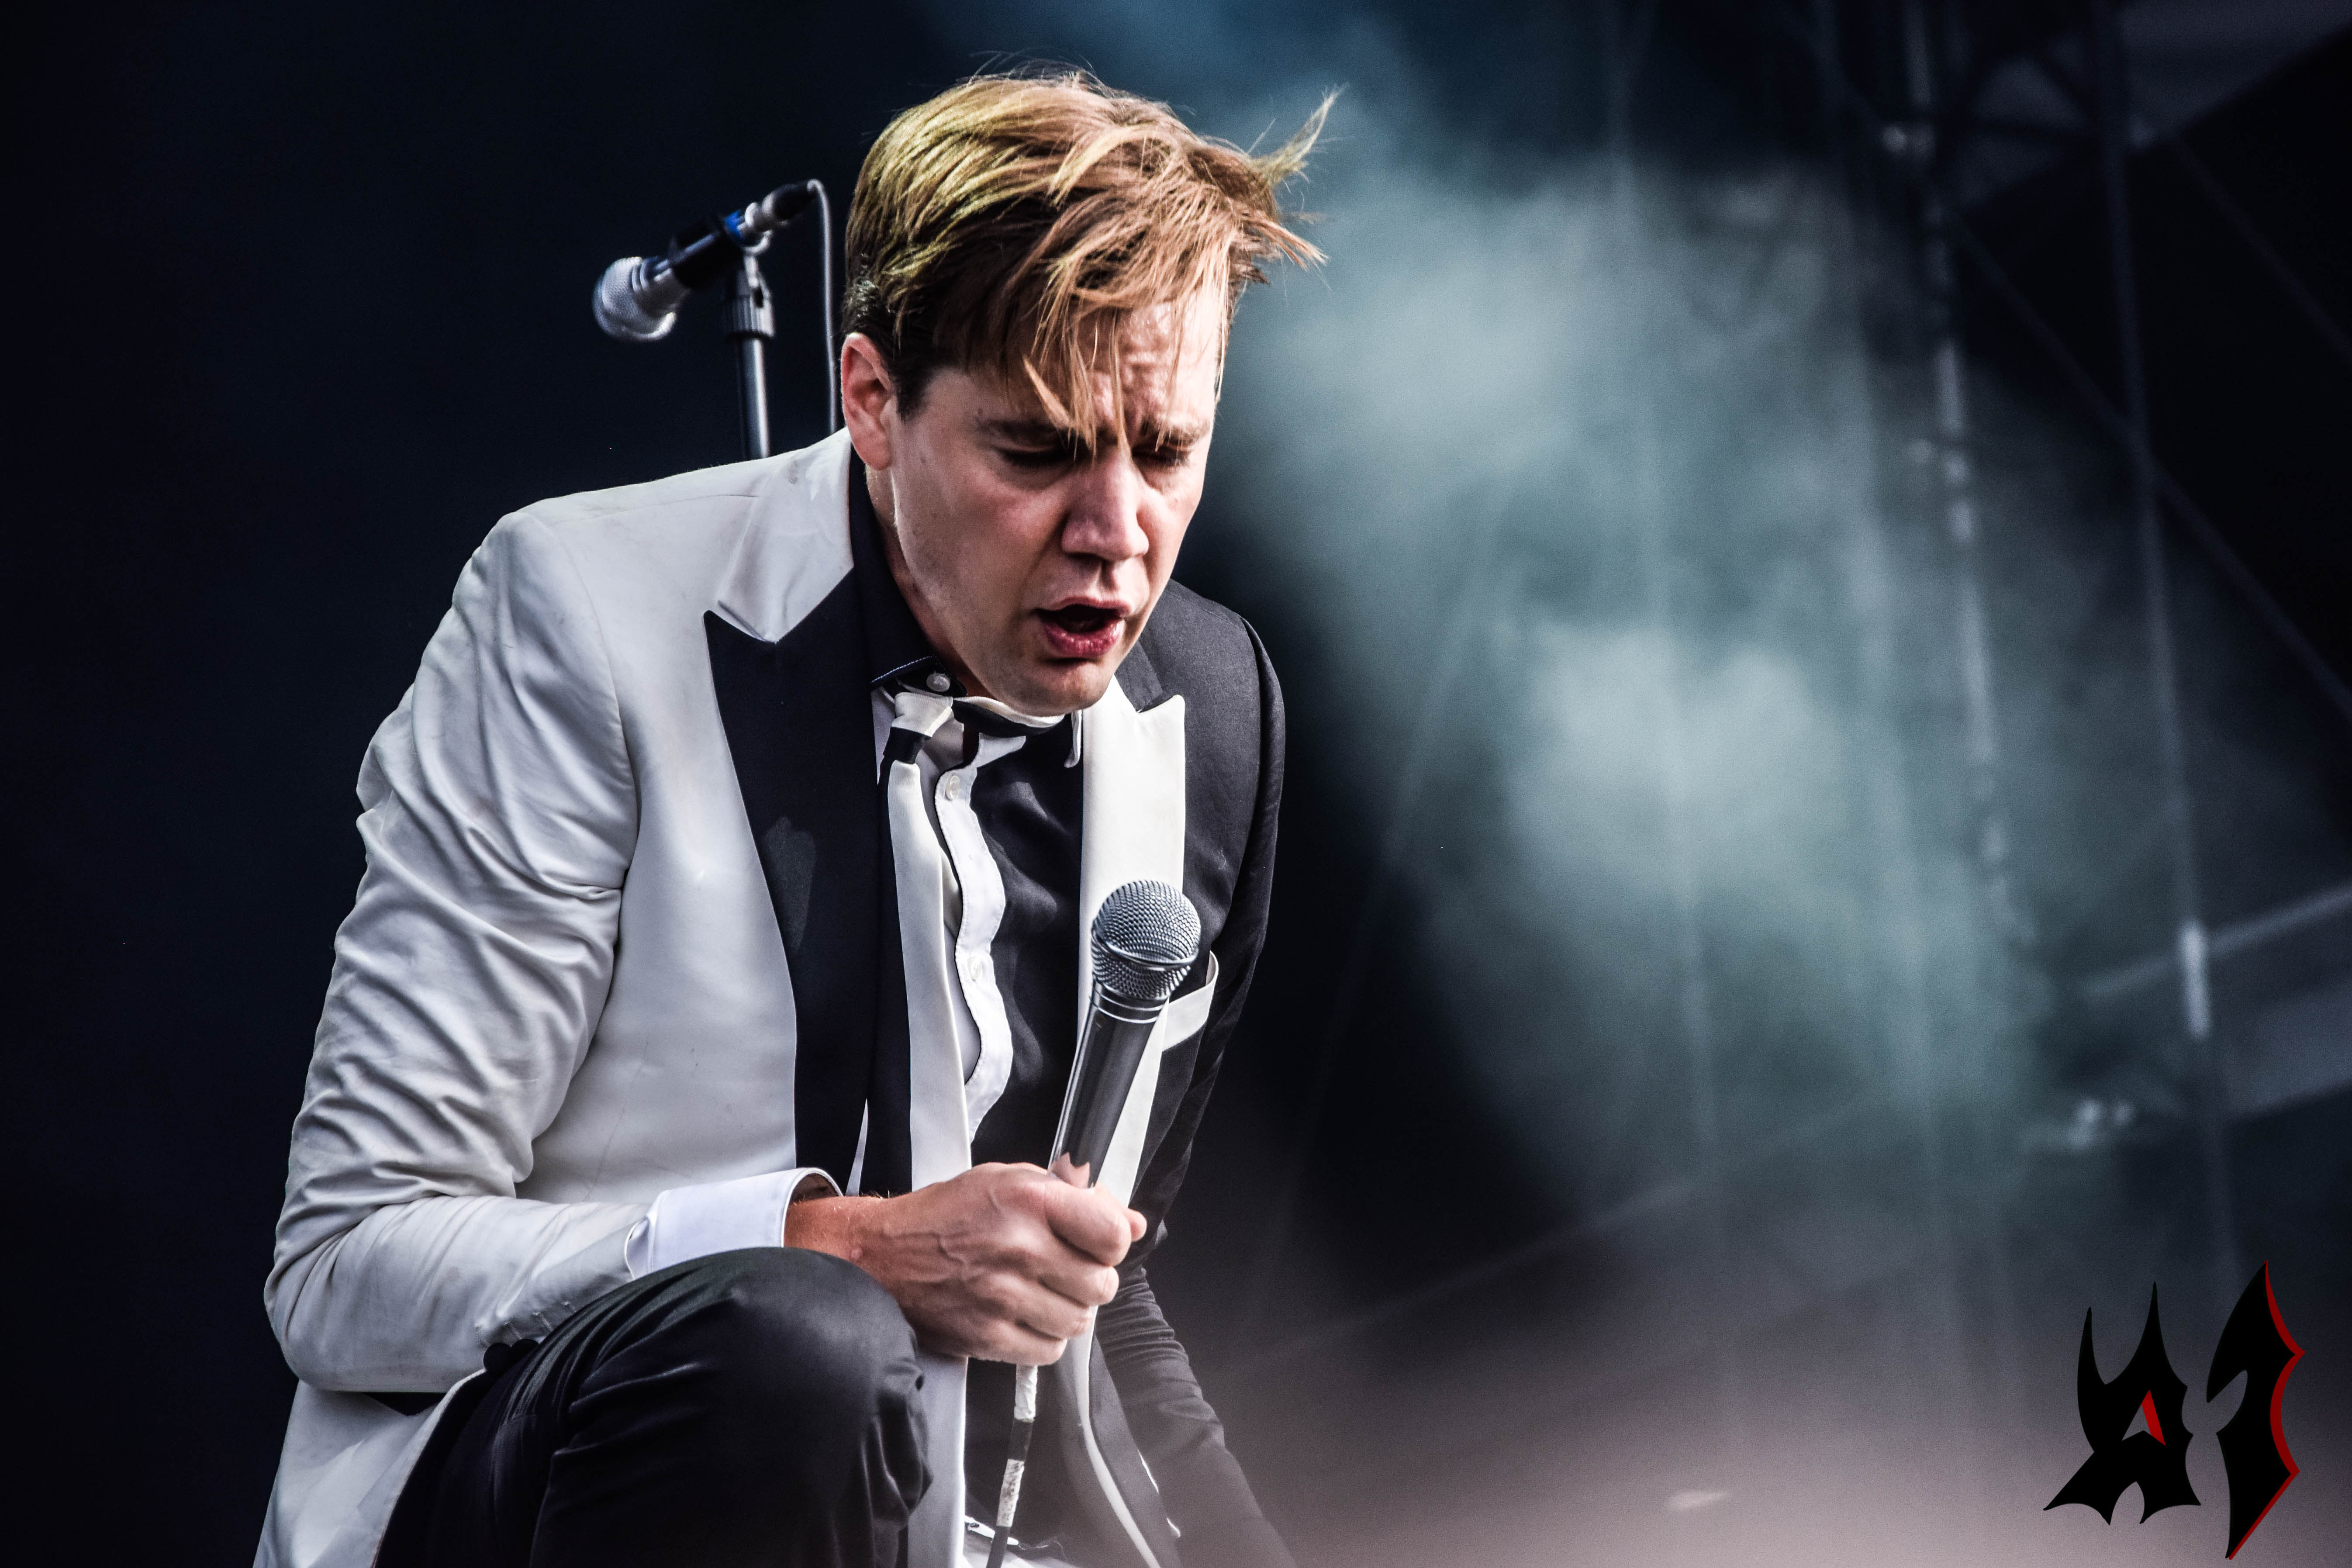 Donwload 2018 – Day 3 - The Hives 26